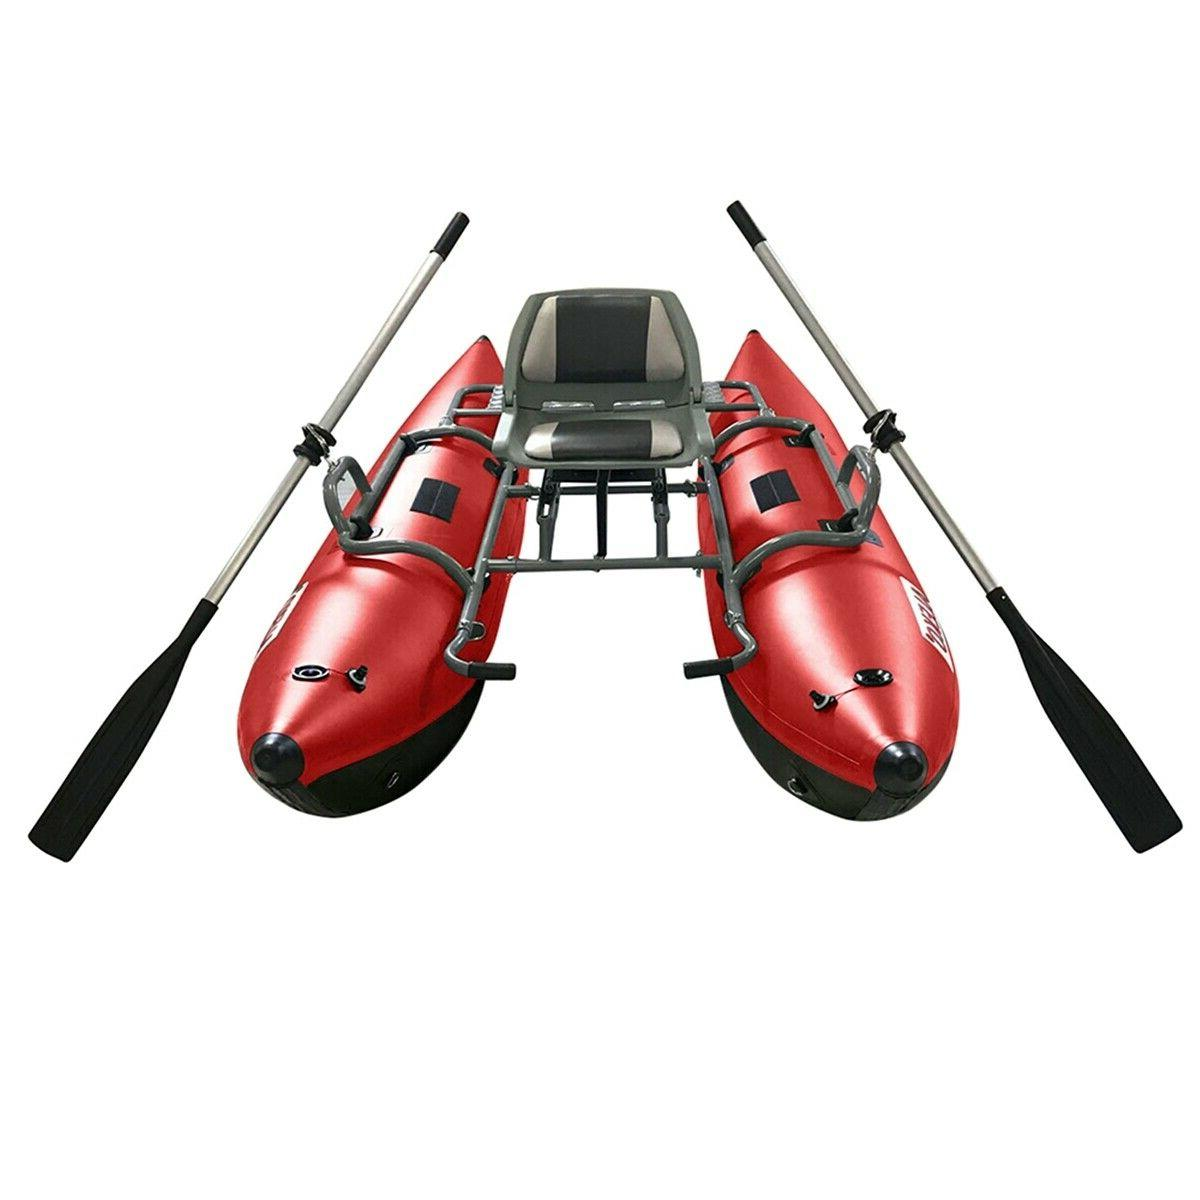 ALEKO Personal Fishing Pontoon Boat with Seat 10 Foot New